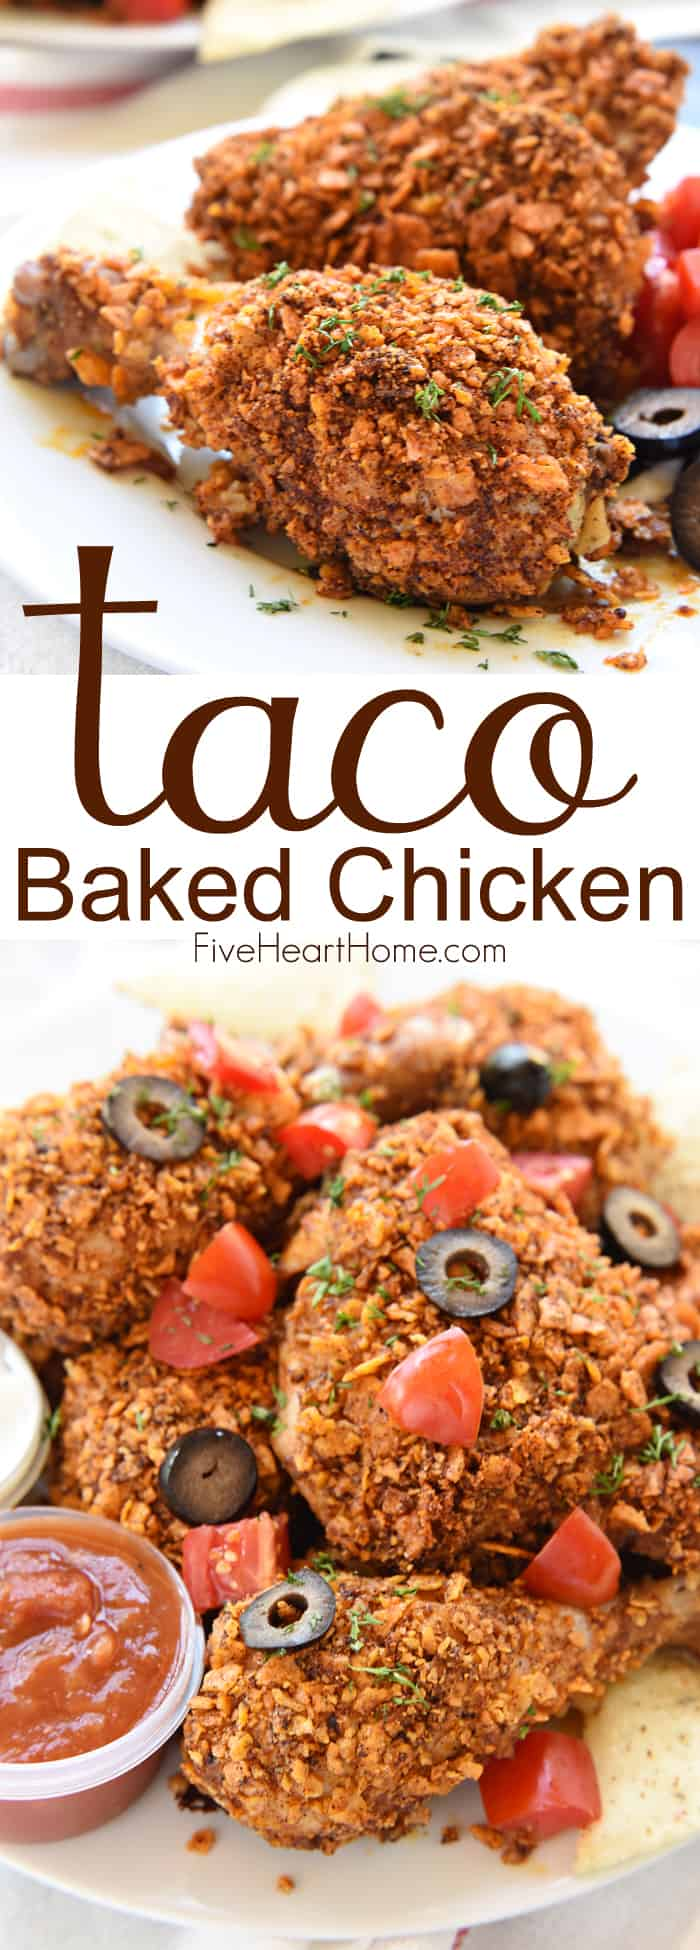 Taco Baked Chicken ~ tender and juicy on the inside with a crunchy coating of taco-seasoned tortilla chips, this Tex-Mex twist on baked chicken is a simple and delicious dinner for any night of the week! | FiveHeartHome.com